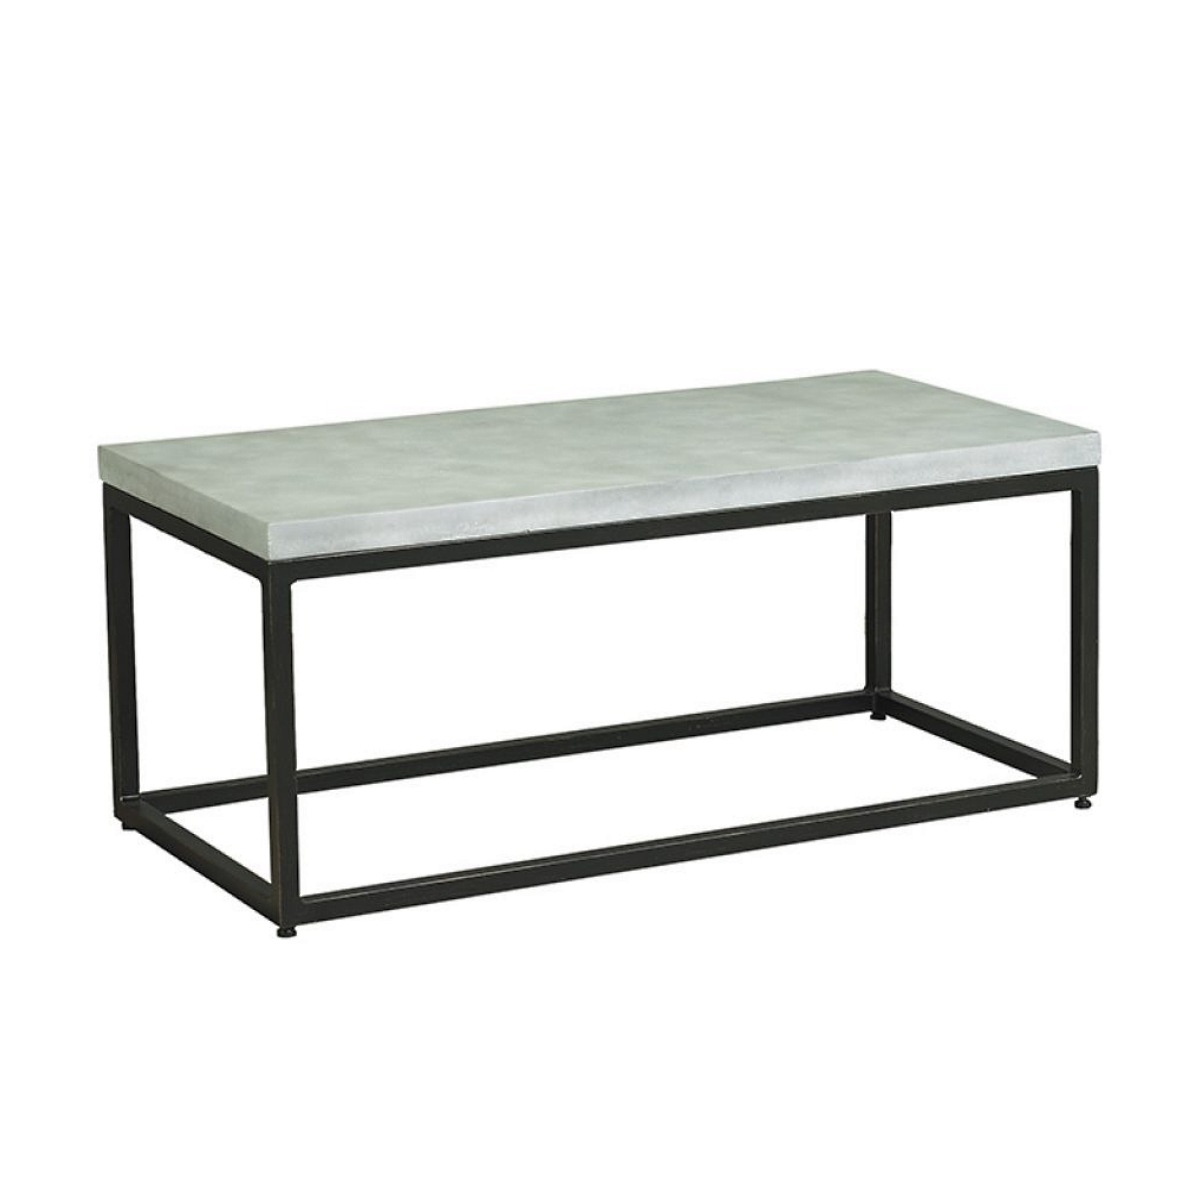 Libby Ridgewood Outdoor Patio Furniture Coffee Table With Lusso Top